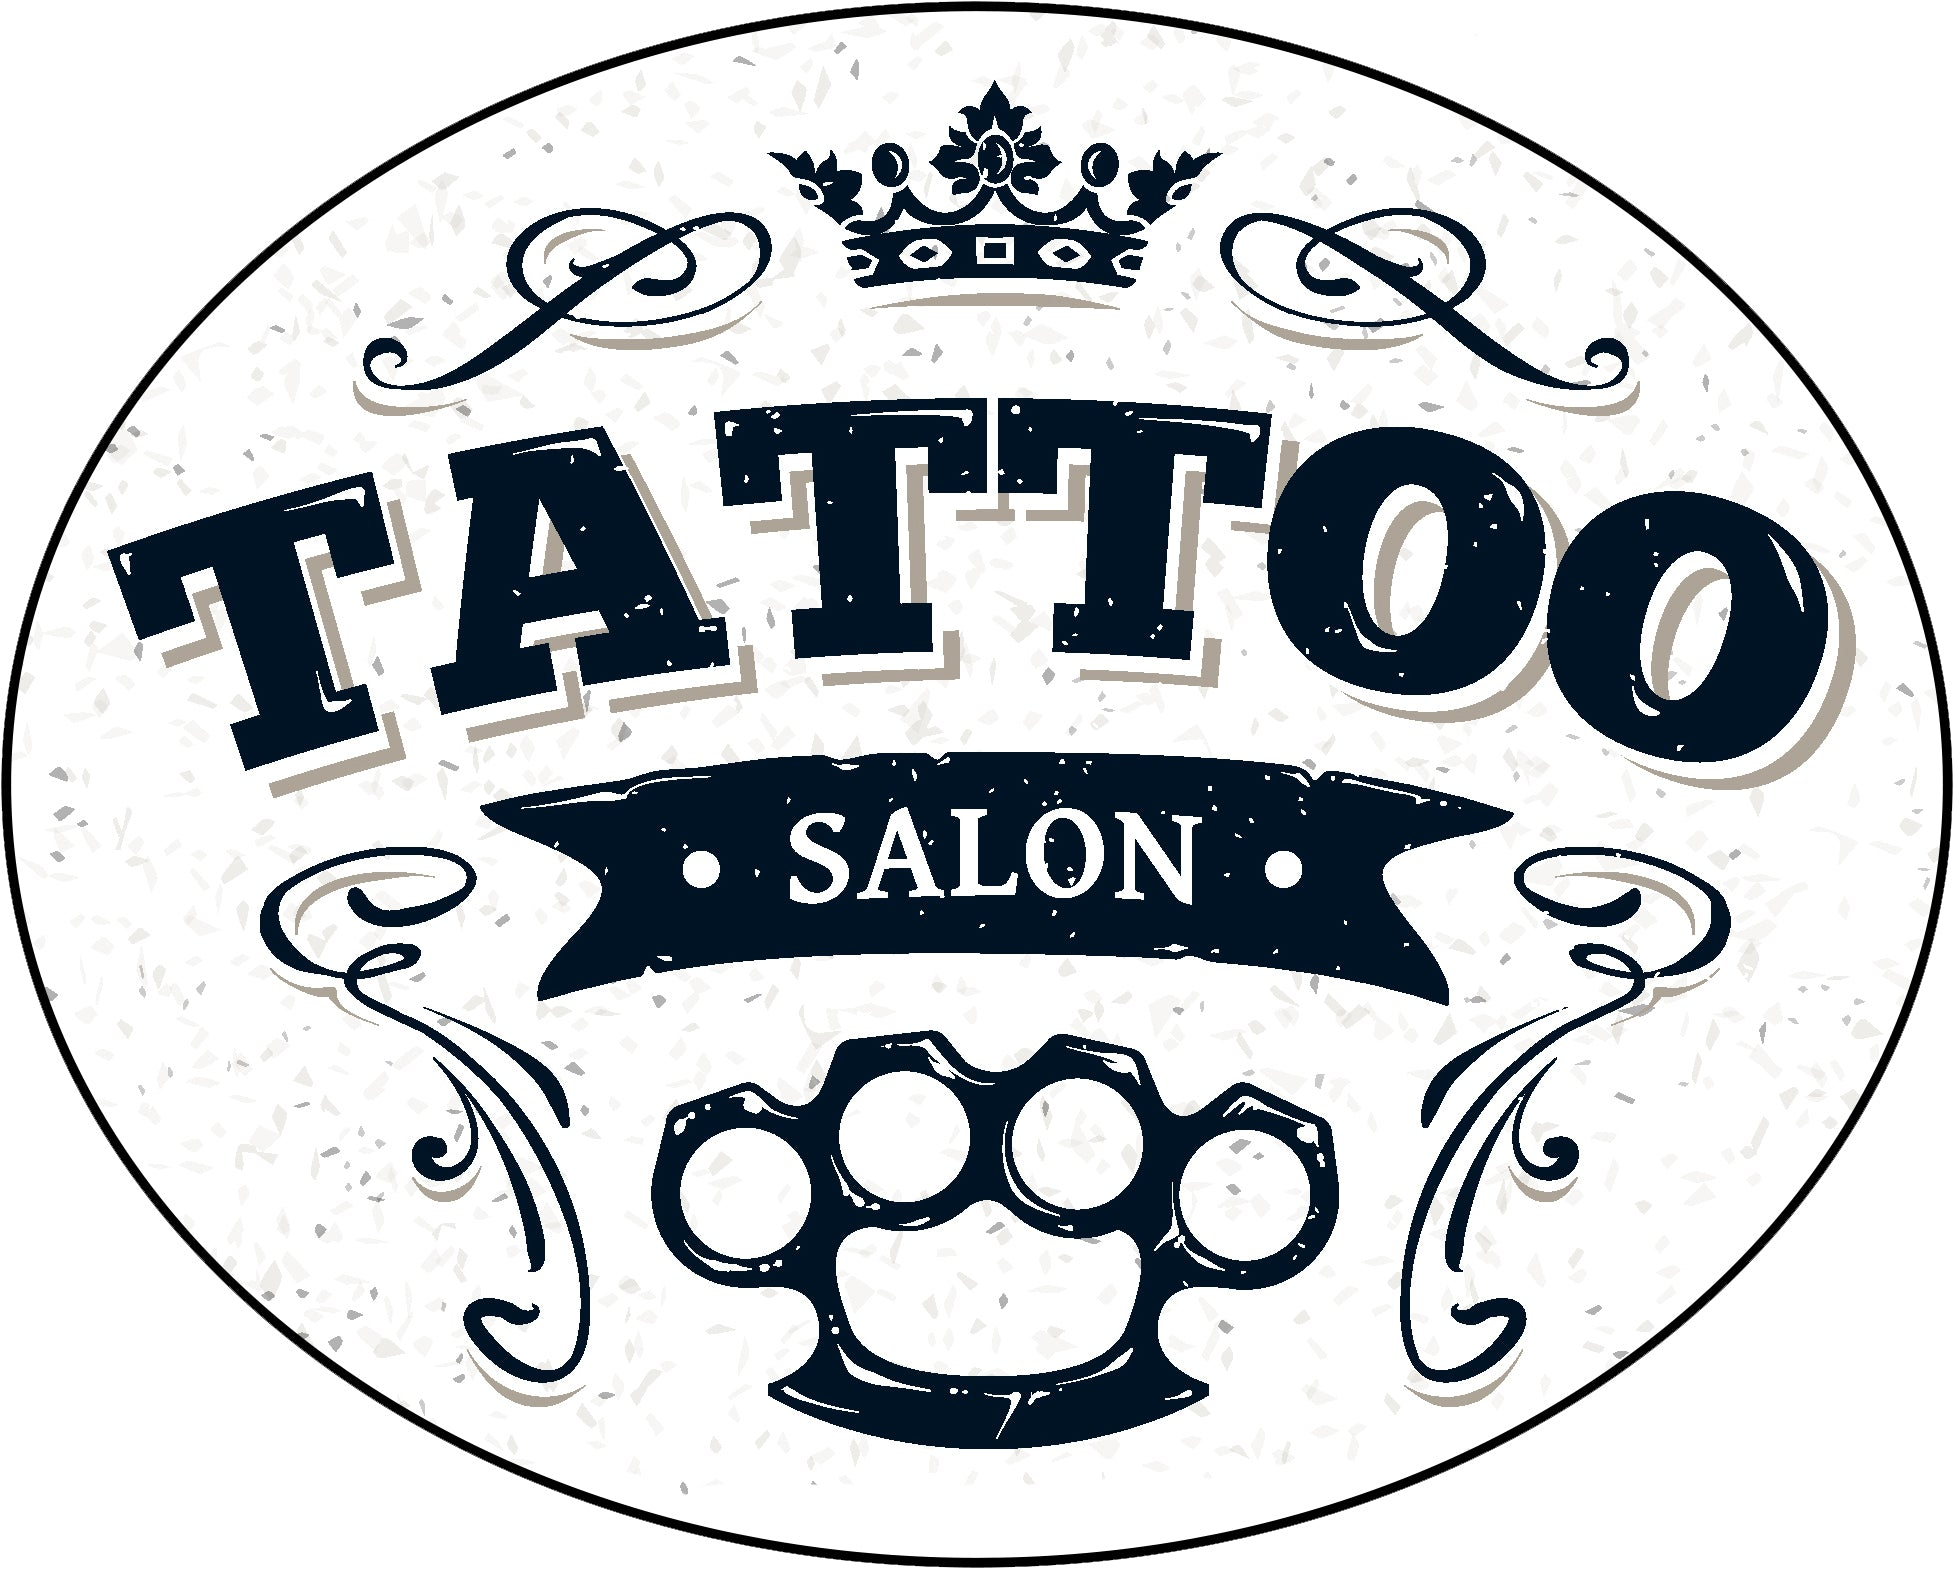 Cool Vintage Tattoo Studio Salon Cartoon Icon #3 Border Around Image As Shown Vinyl Decal Sticker